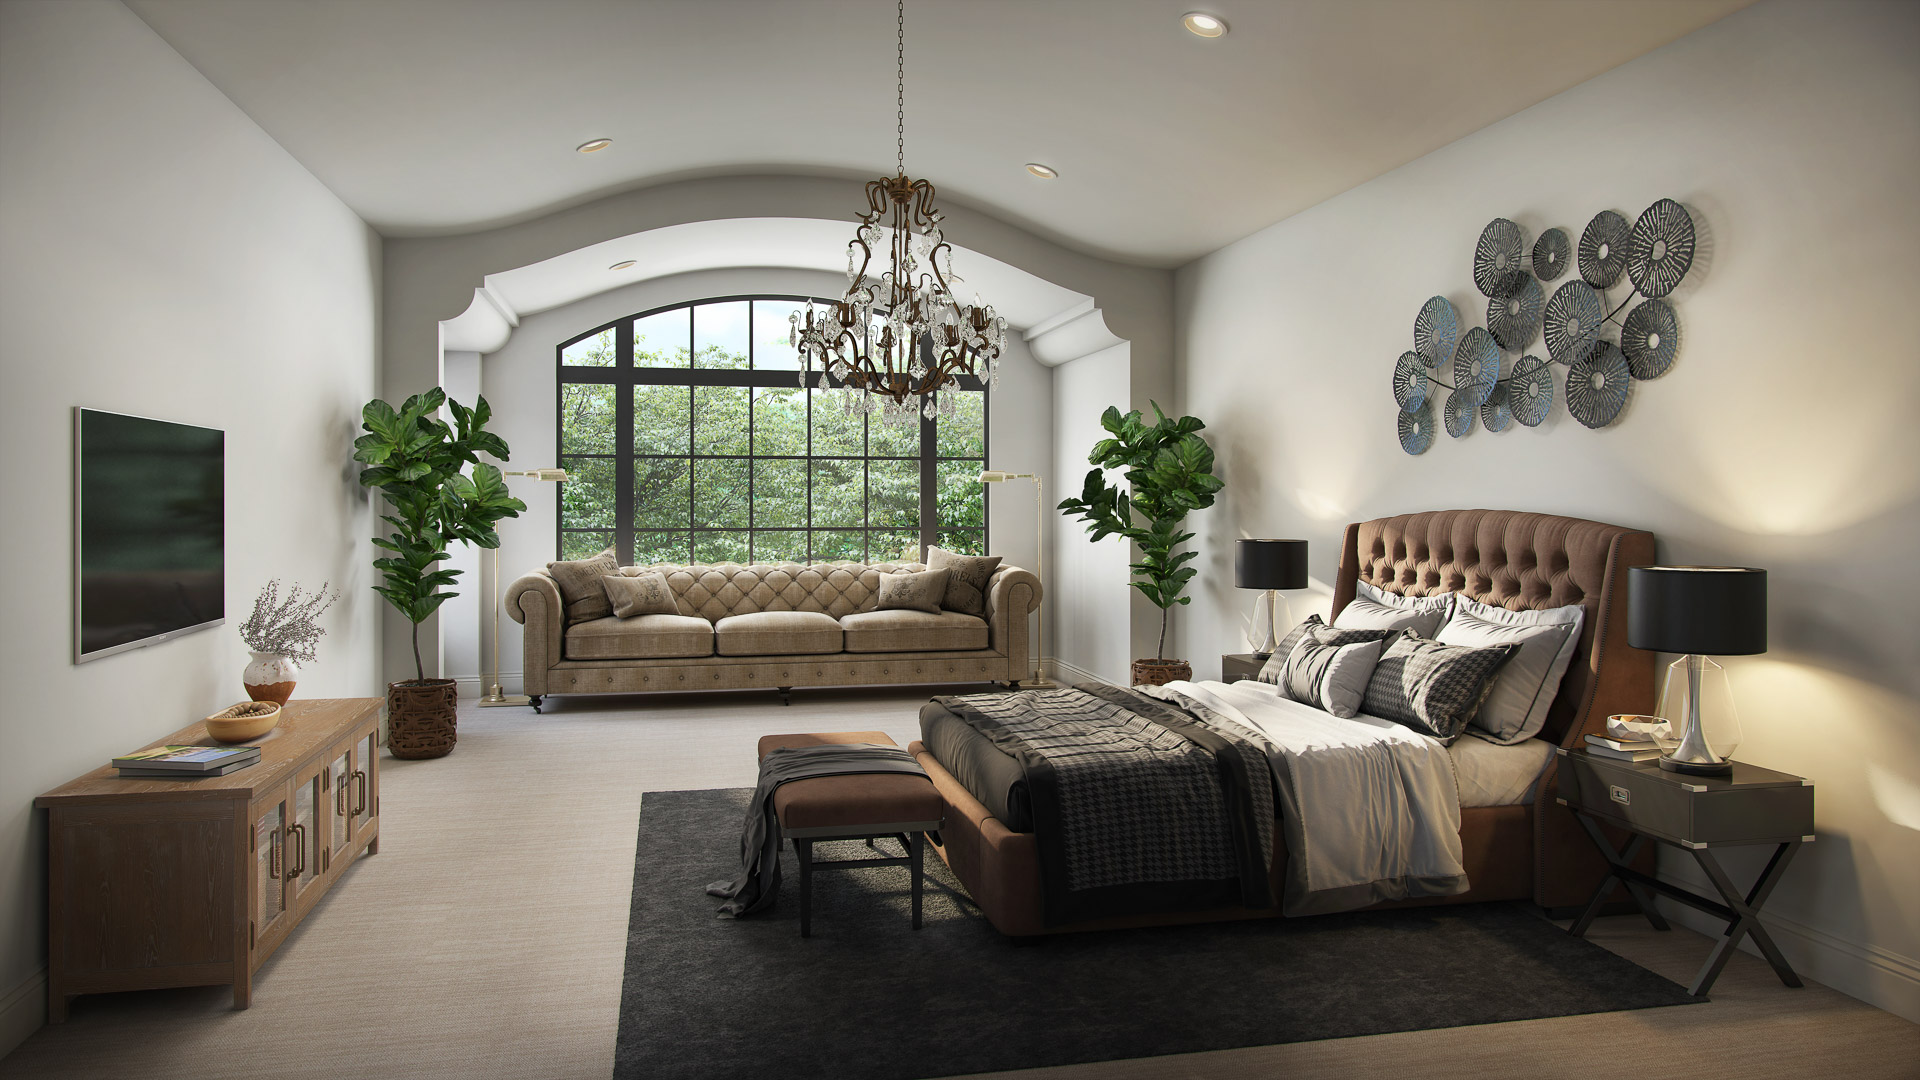 GreenTree_Interior_MasterBedroom_Cam1_HD_010819